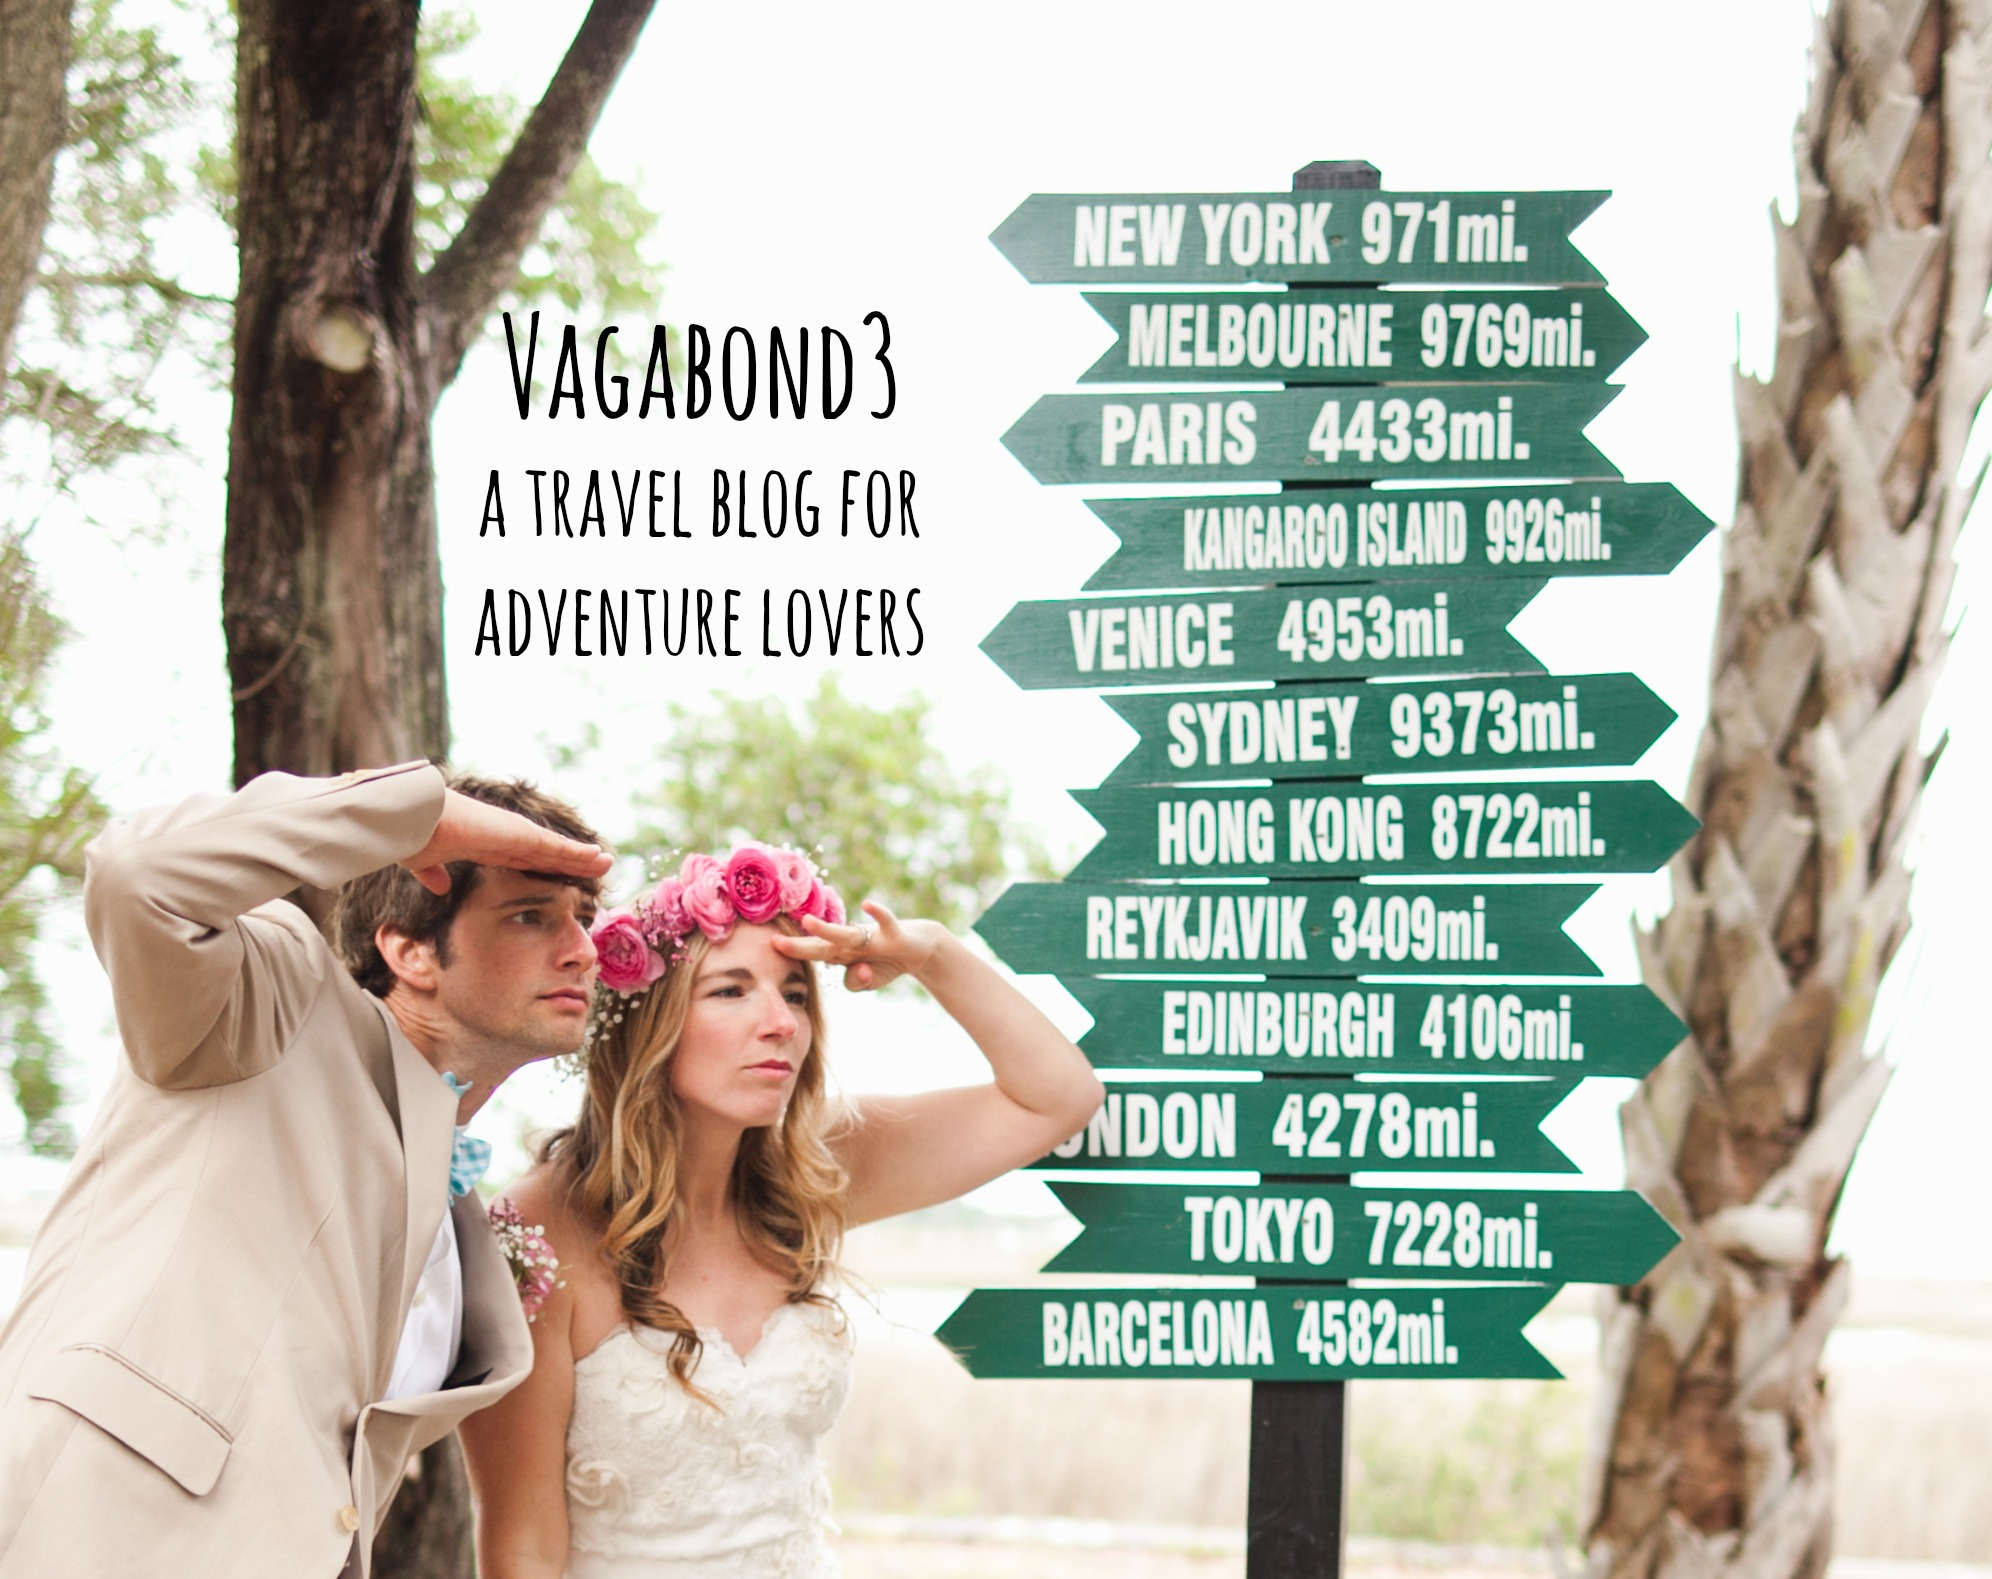 Vagabond3 World Travel Blog